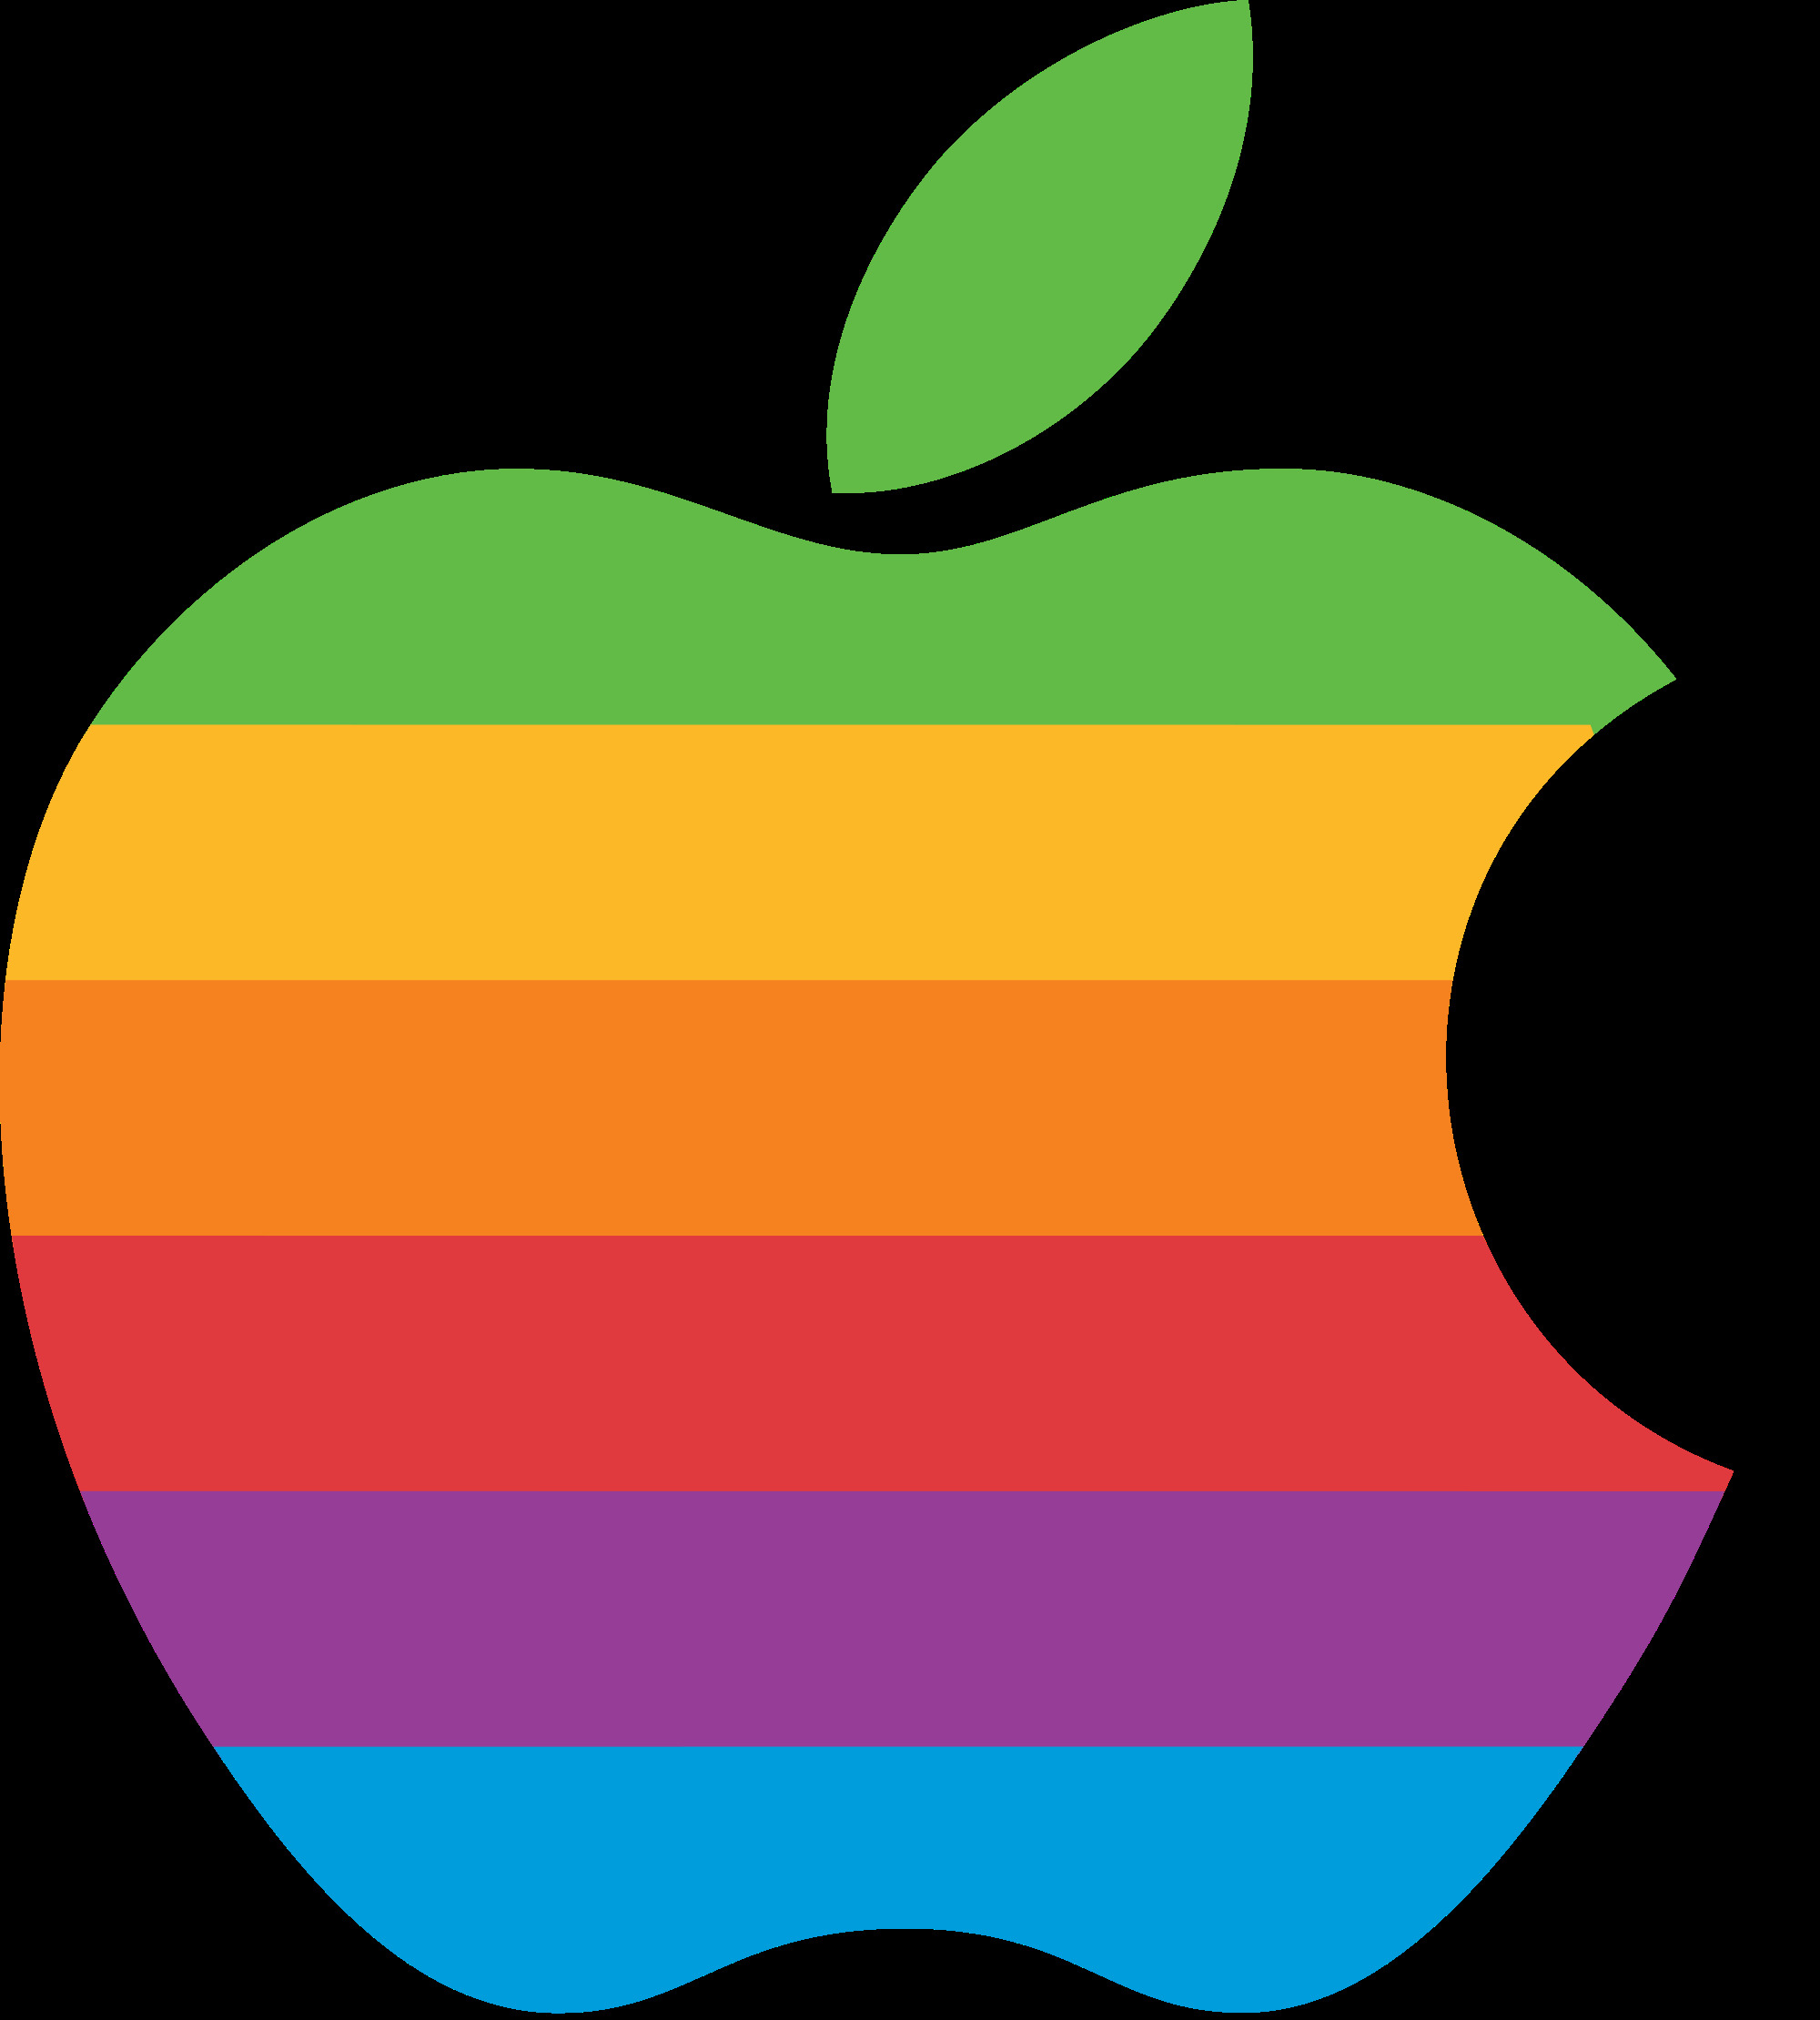 apple computer logo rainbow